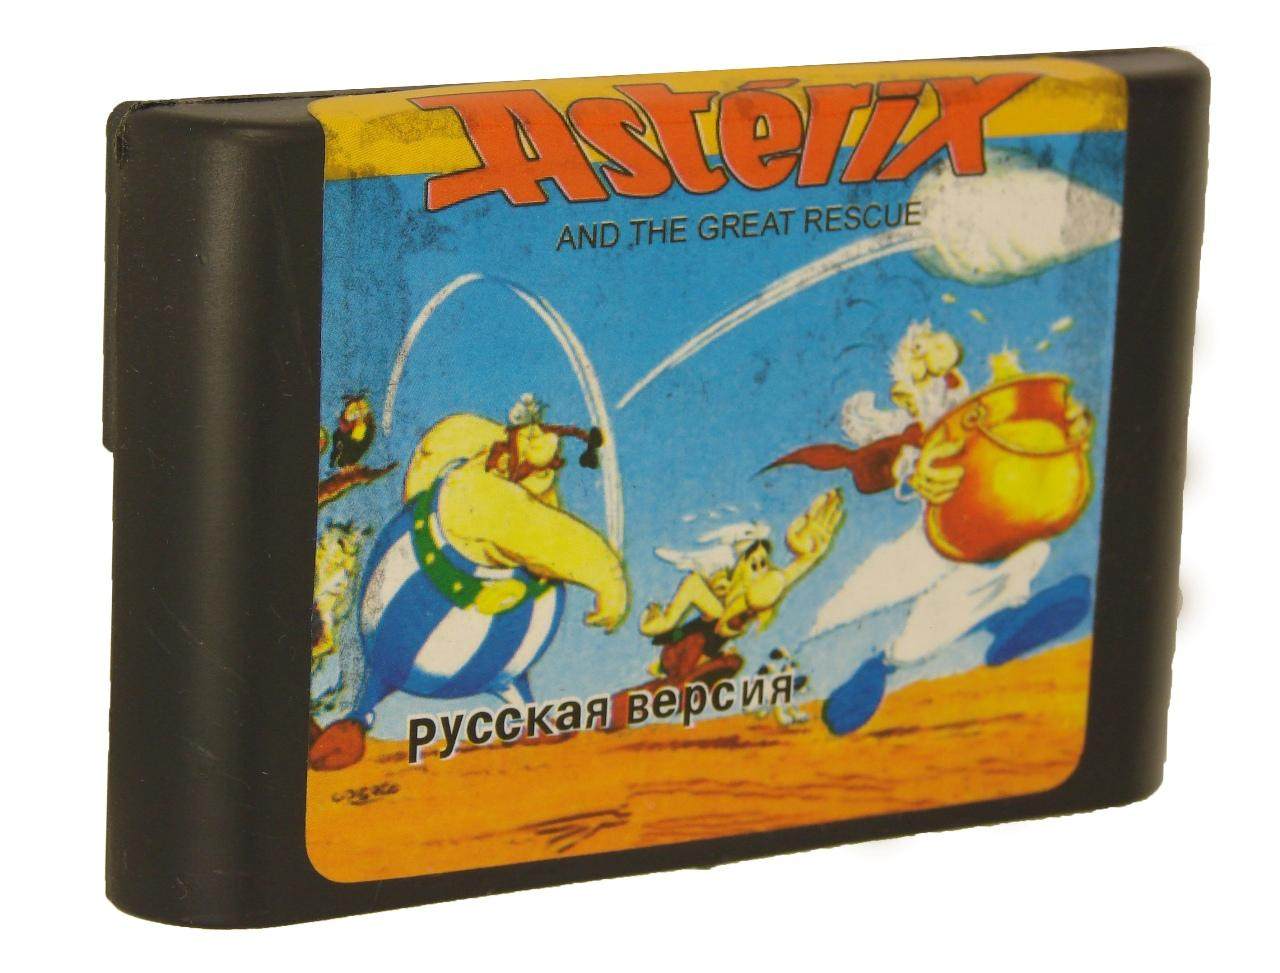 Картридж для Sega Asterix and the great rescue (Sega)